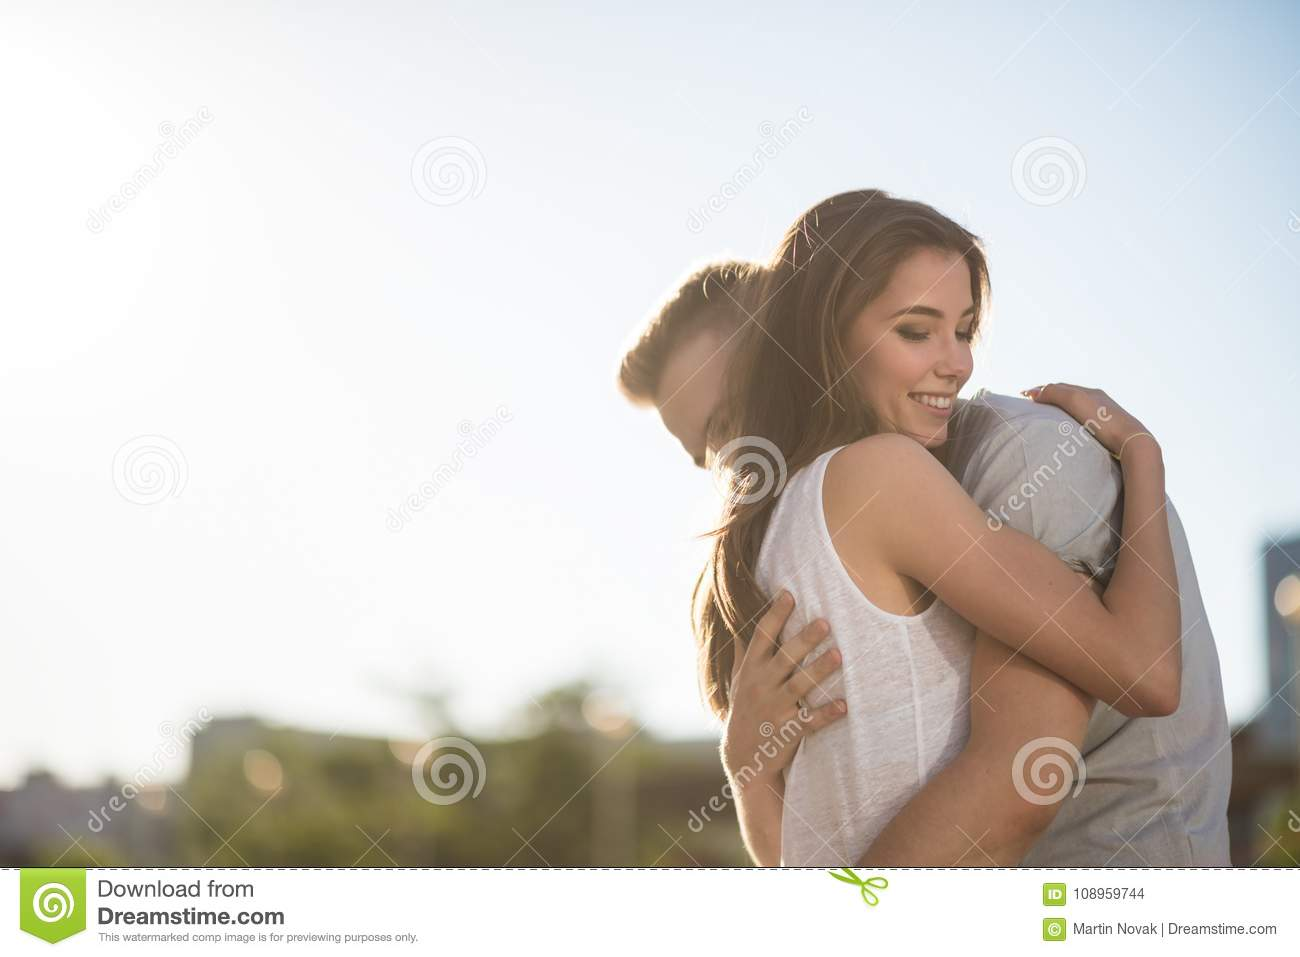 Affectionate Love Teen Couple Embracing Stock Photo Image Of Flare Outdoor 108959744